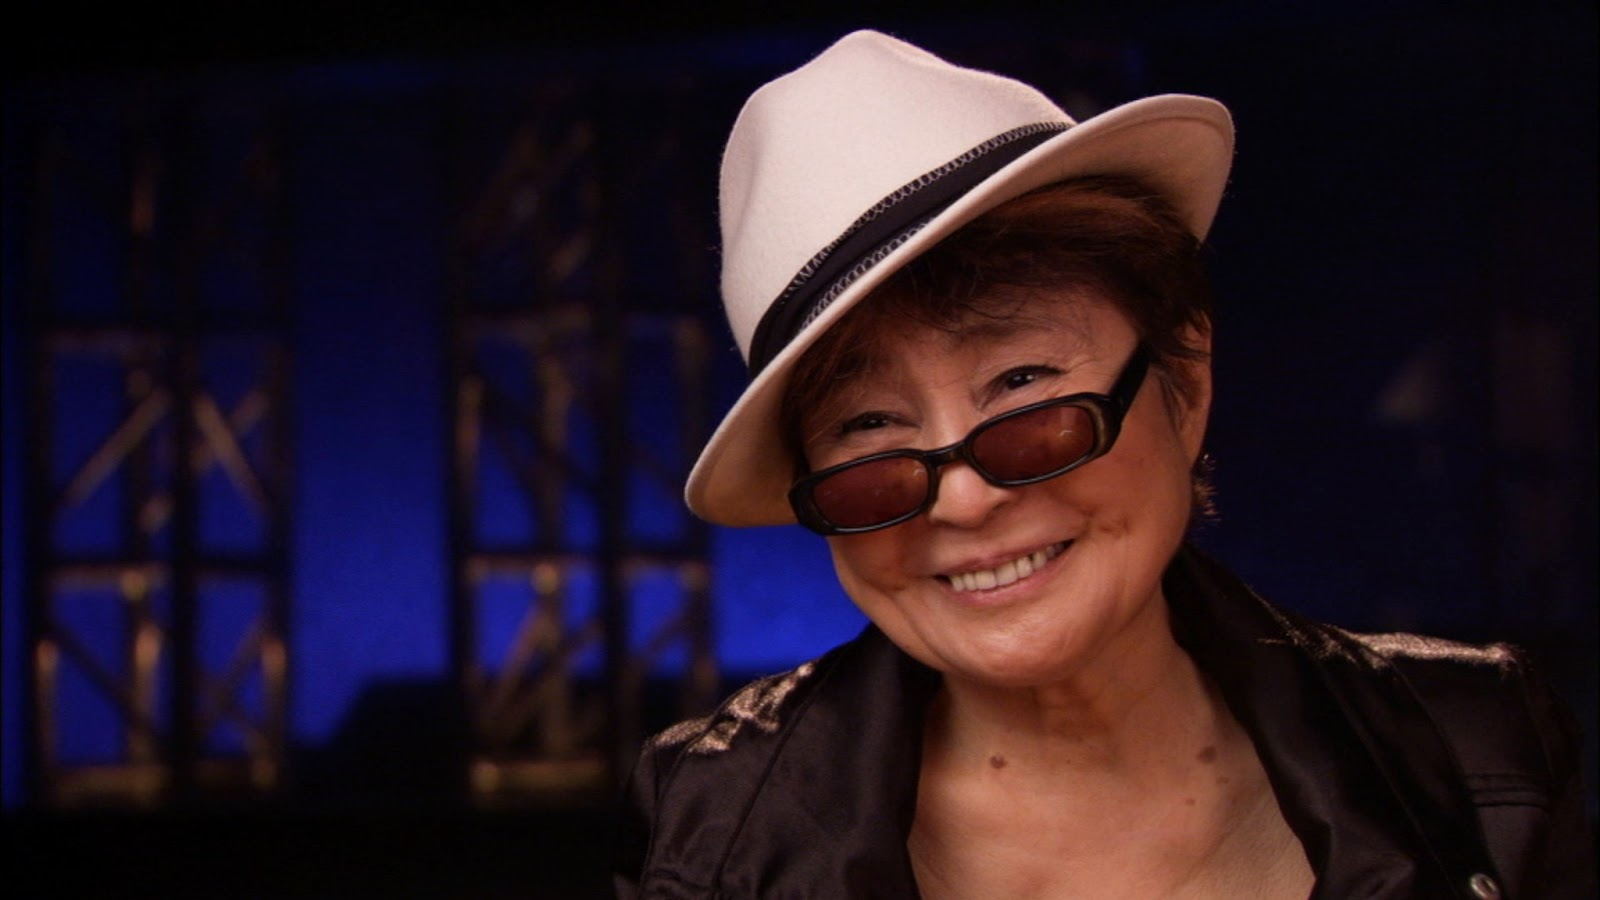 The amazing Yoko Ono, who still regularly has big hits on the dance charts, turns 80 today.